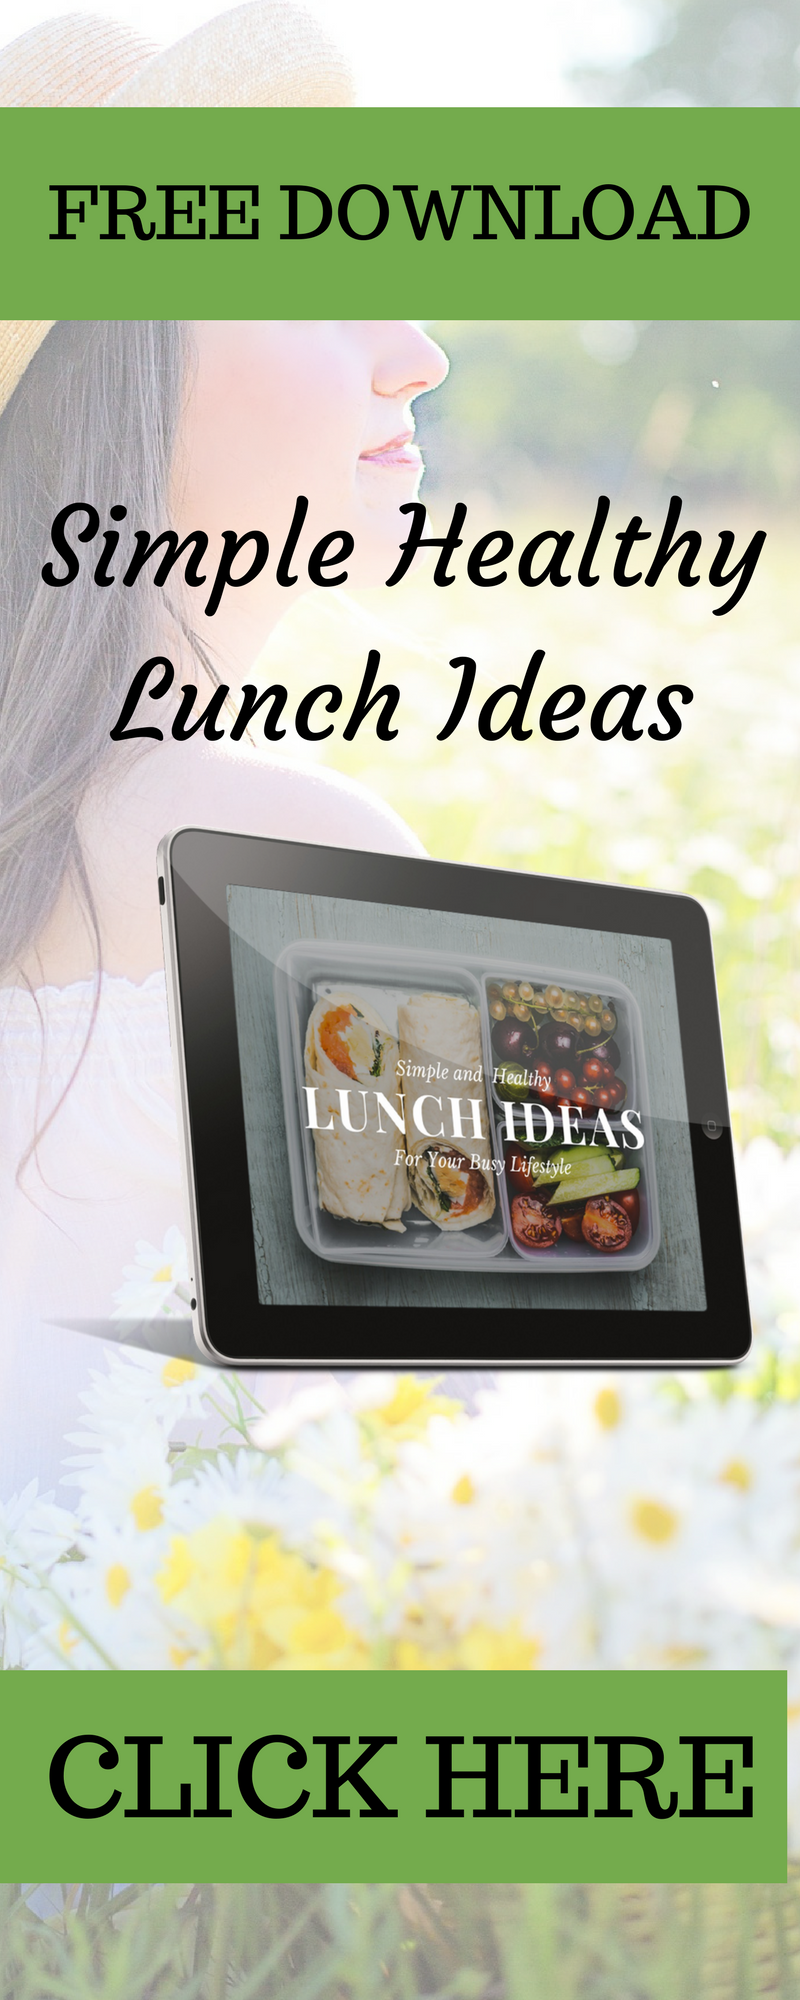 Simple Healthy Lunch Ideas - Request your free guide at http://www.balancedhealthandyou.com/opt-in-resources/simple-healthy-lunch-ideas/